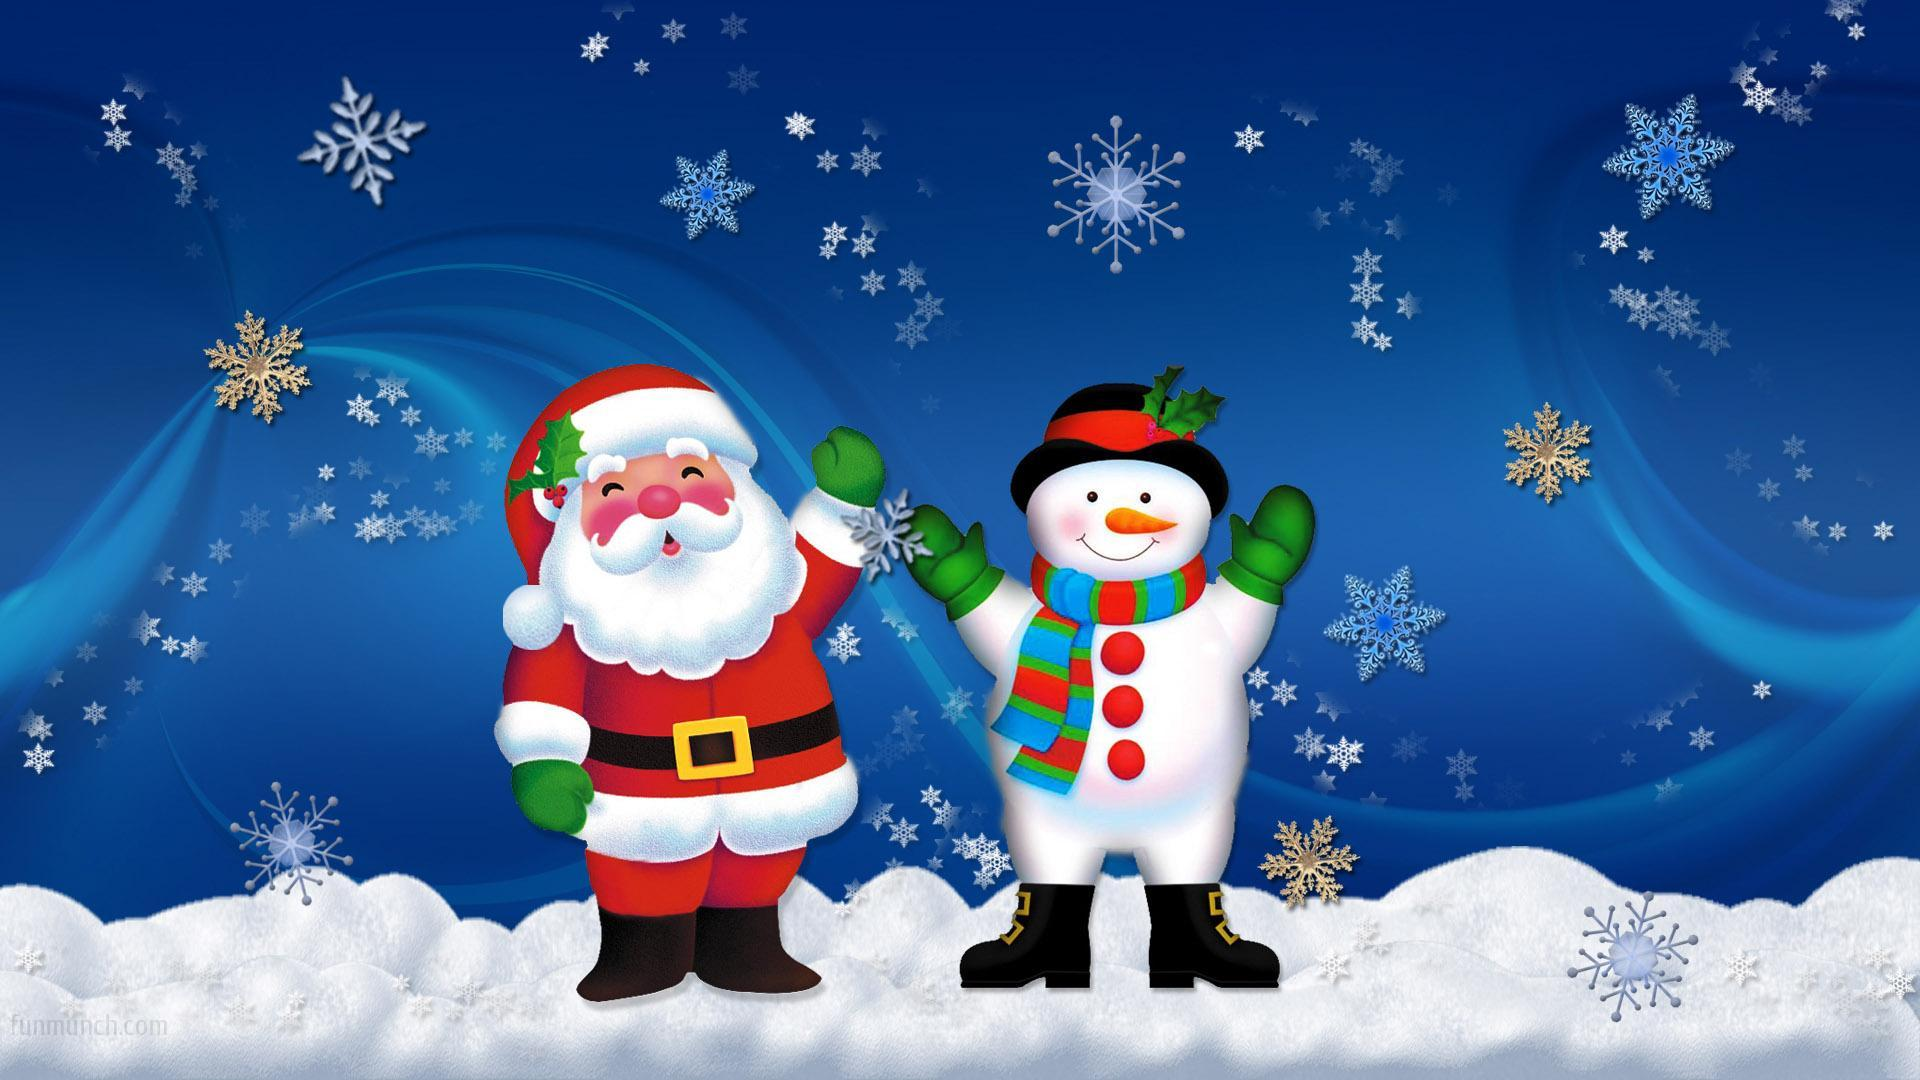 Christmas Wallpapers Share  Android Apps on Google Play 1920x1080